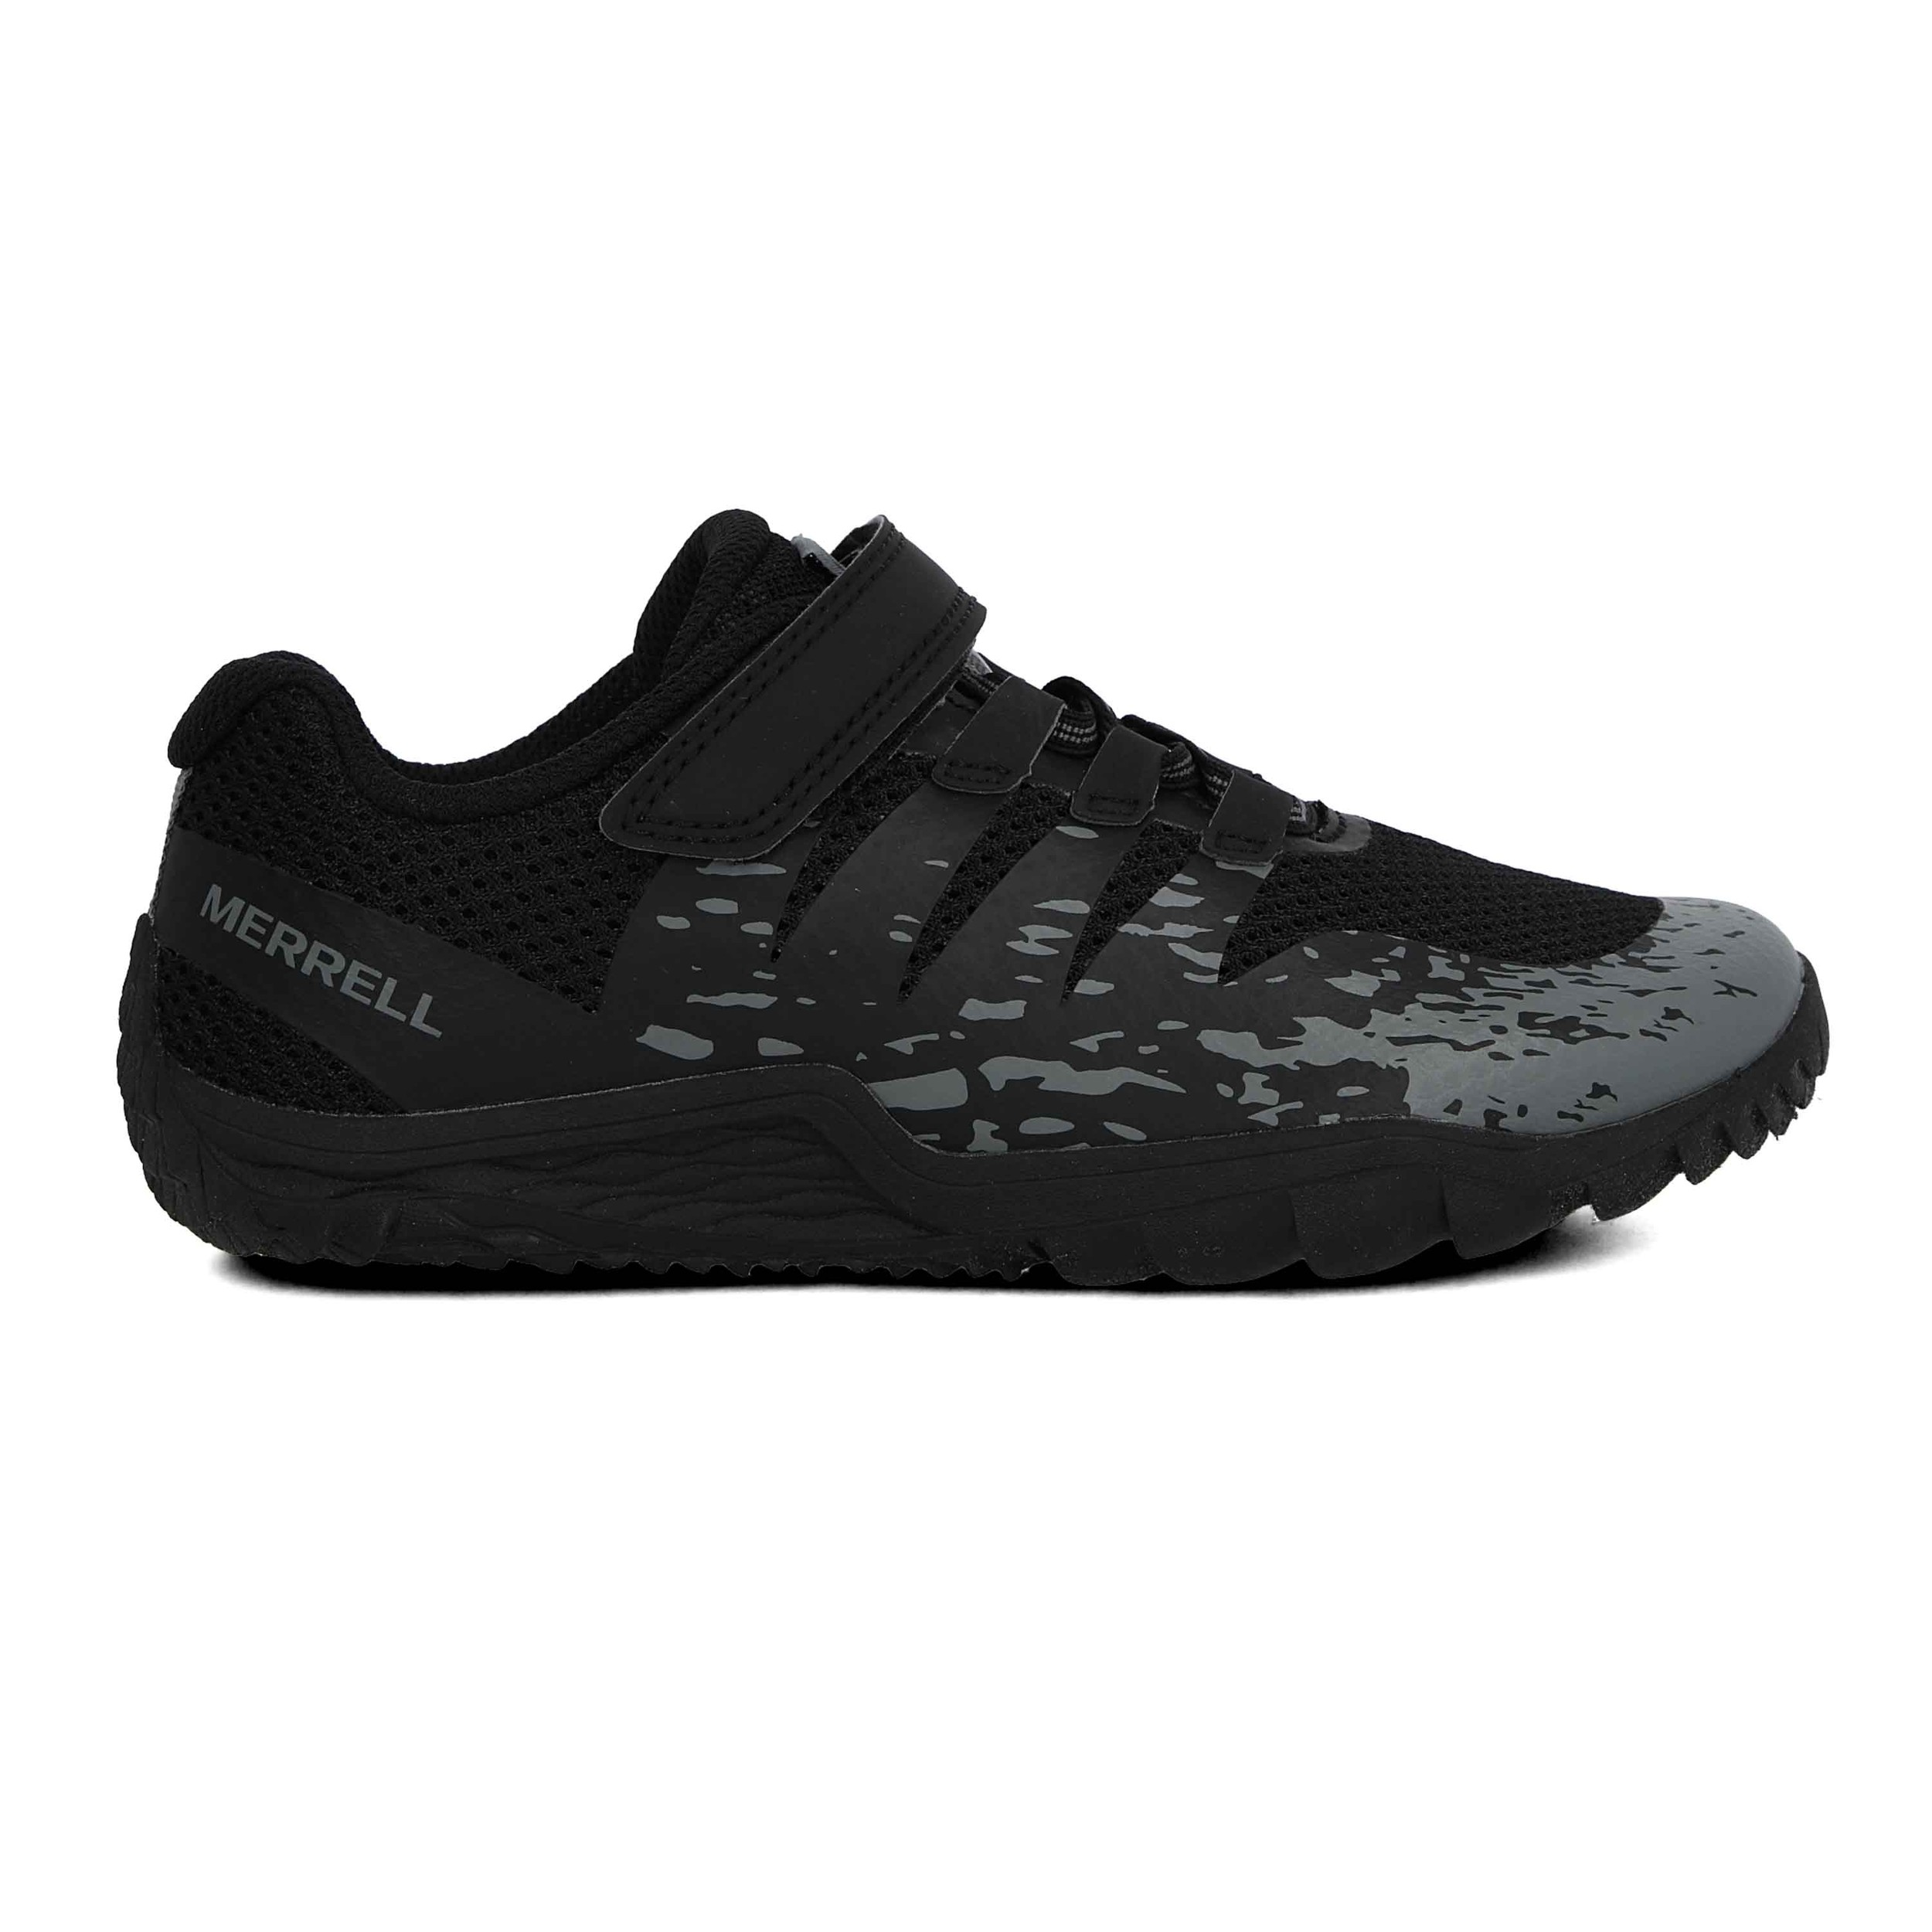 Black Sports Merrell Boys Trail Glove 5 A//C Running Shoes Trainers Sneakers